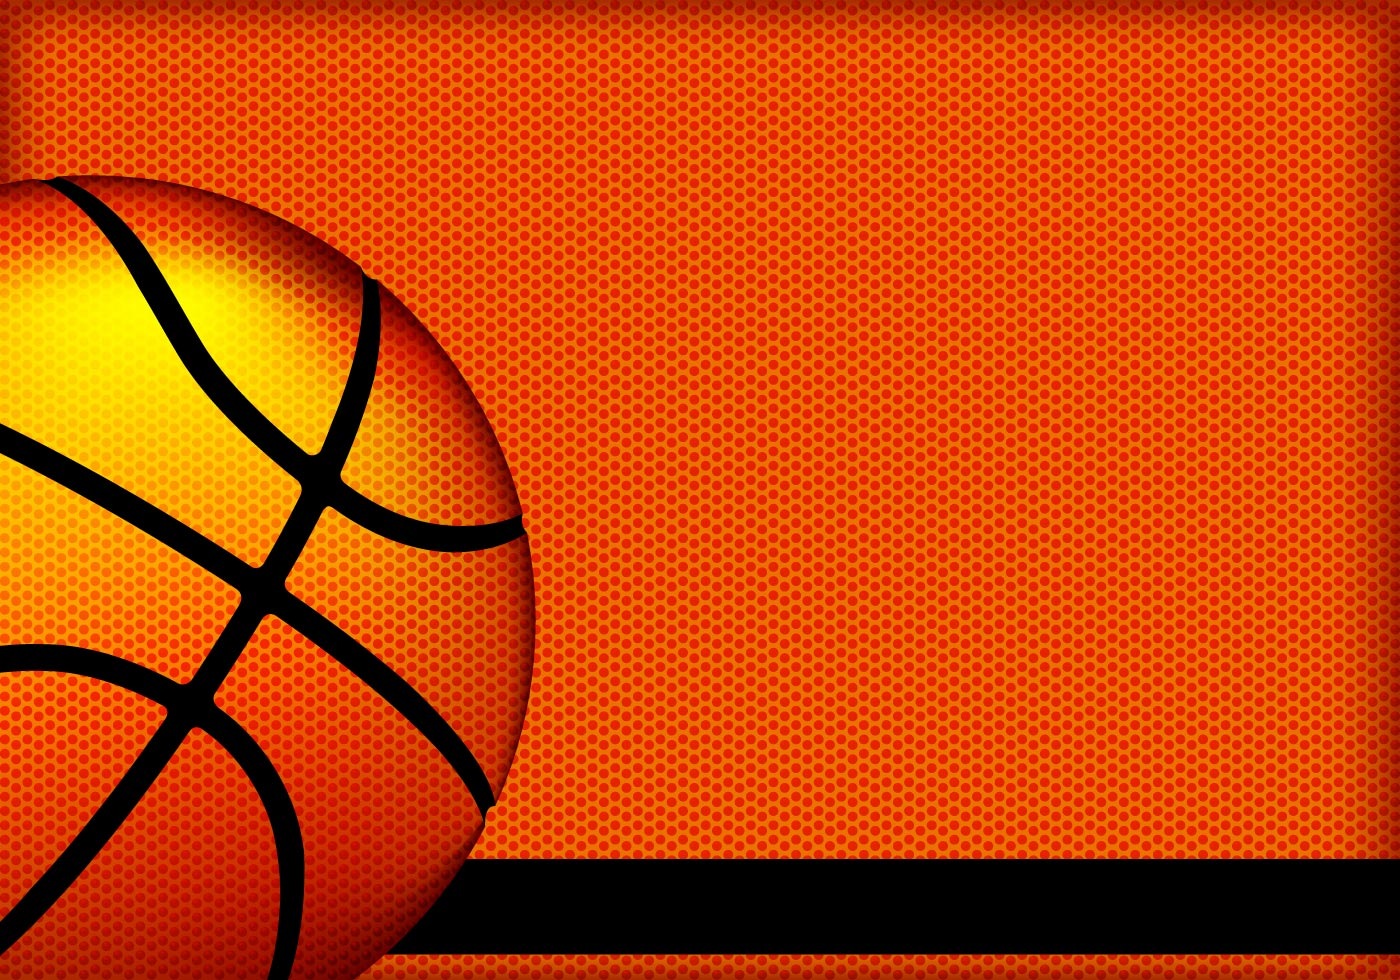 Basketball texture vector background download free vector art stock graphics images for Free basketball vector